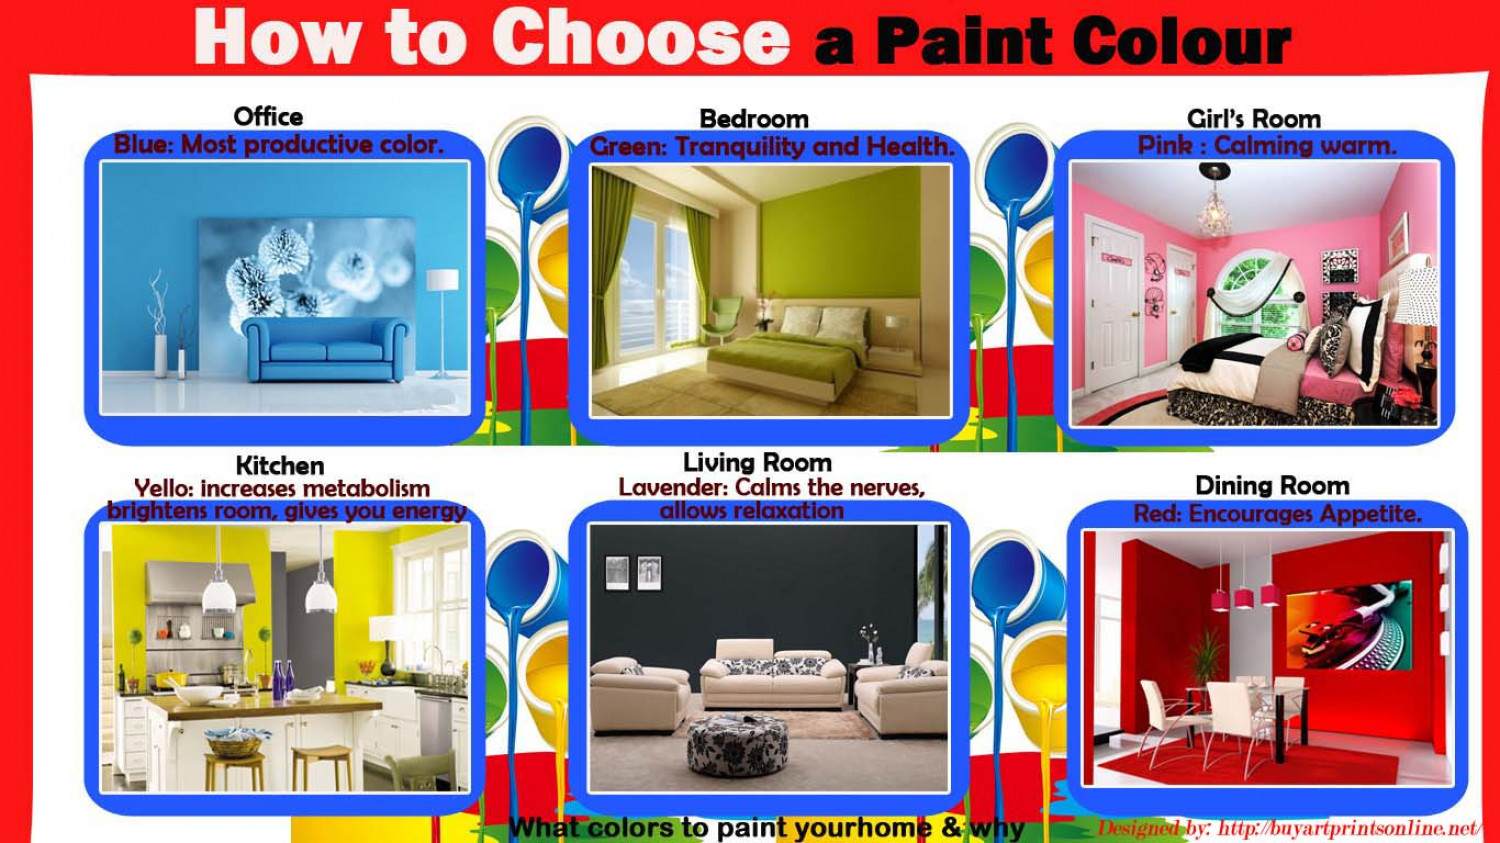 How to Choose A Paint Colour Infographic